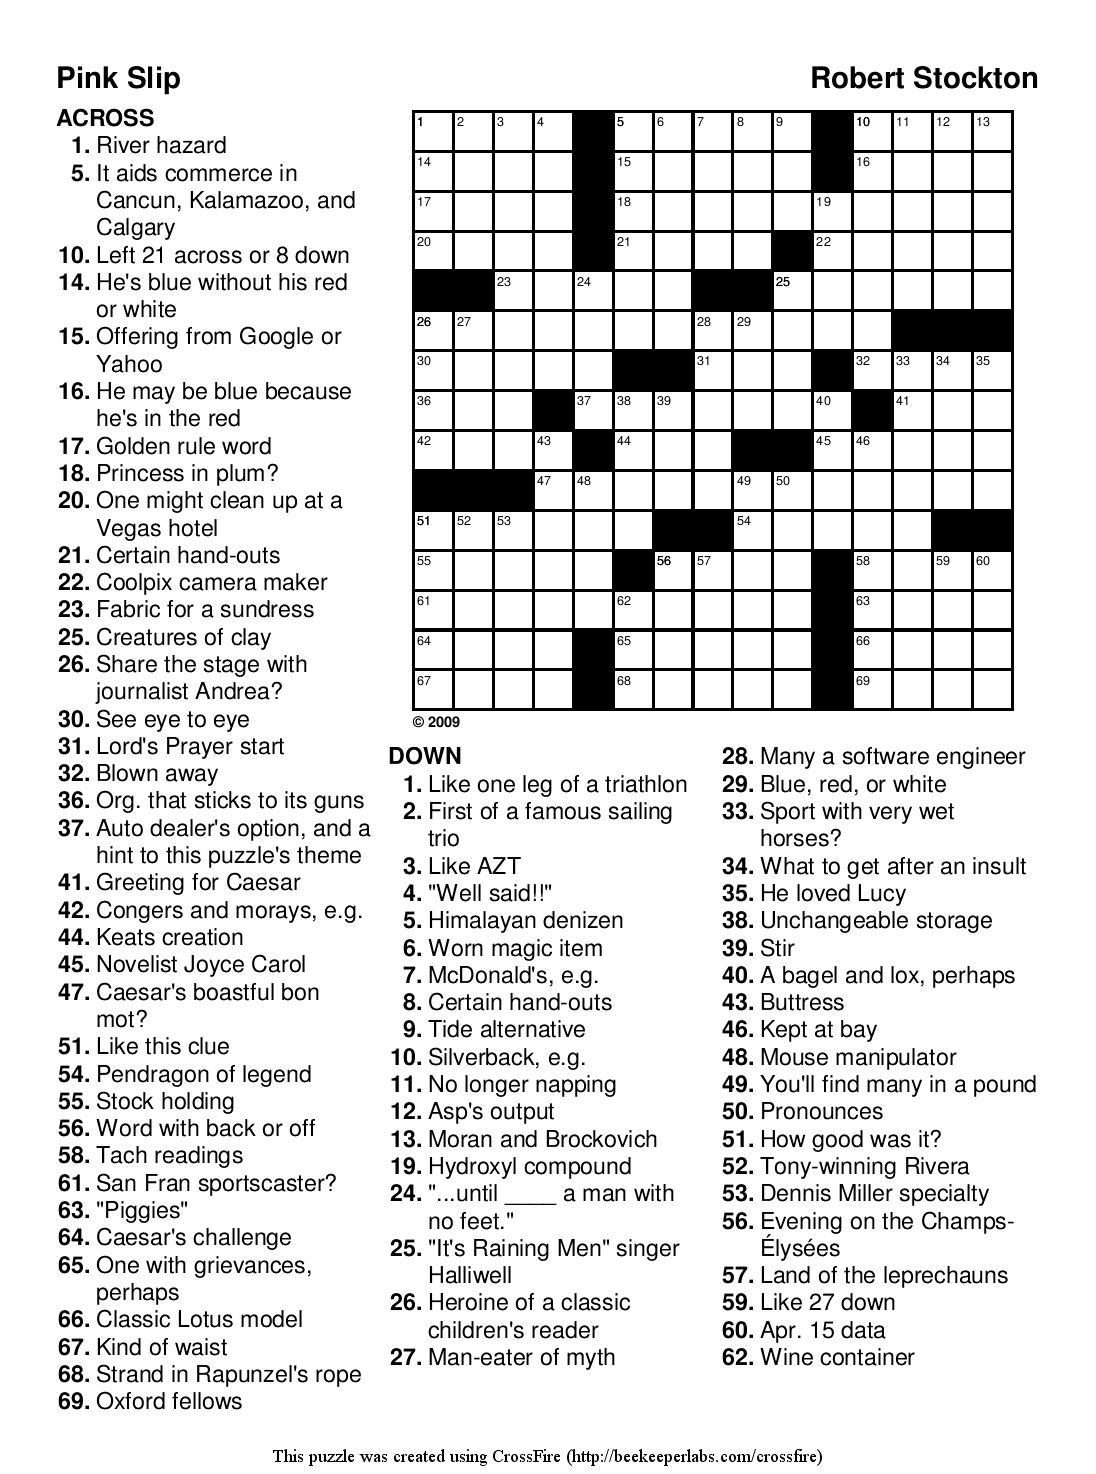 Printable Puzzles For Adults | Easy Word Puzzles Printable Festivals - Bible Crossword Puzzles For Adults Printable